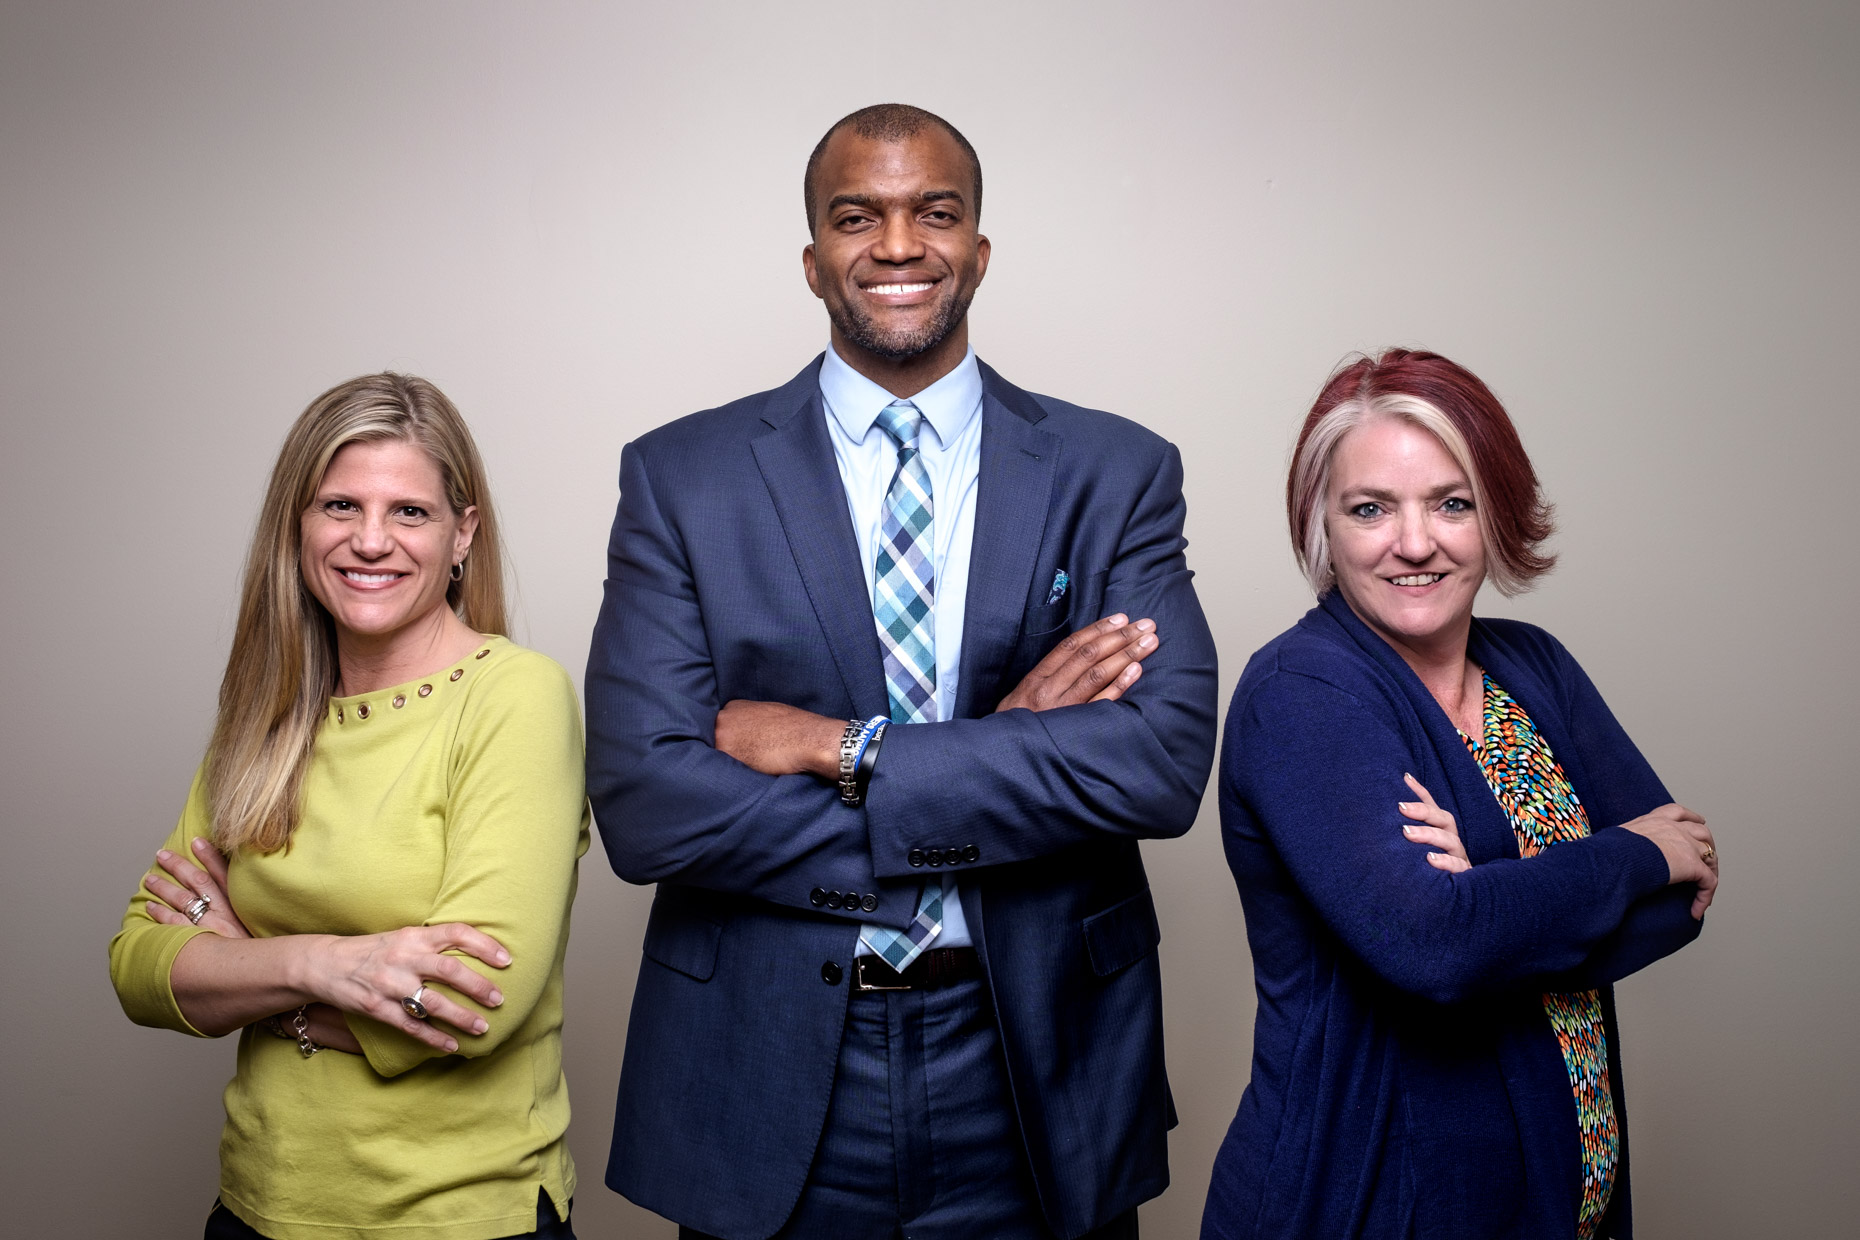 Group business image of three farmers insurance professionals.